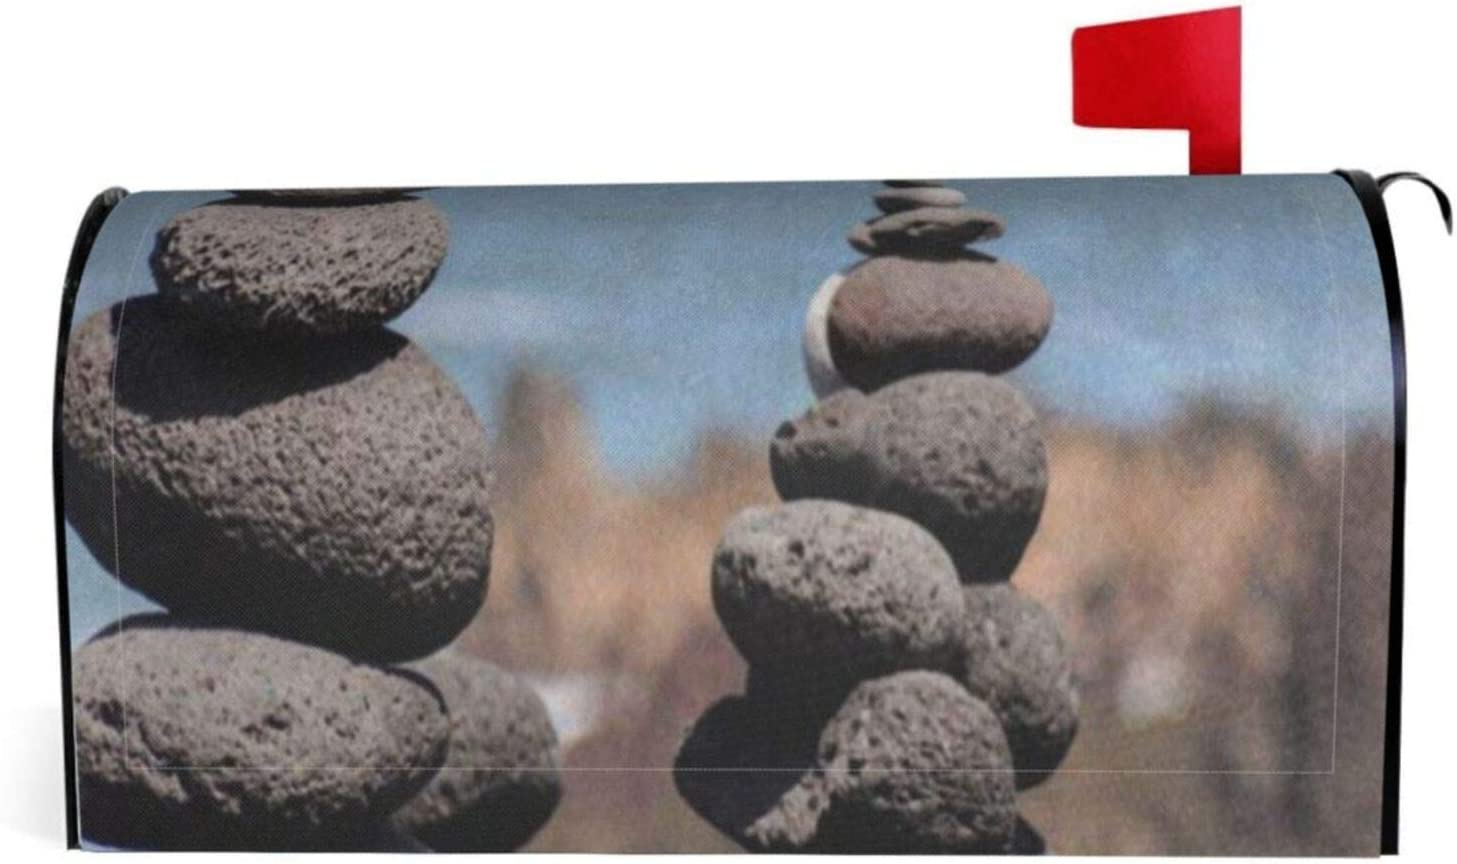 Sea Beach Zen Stone Mailbox Cover, Mailbox Covers Magnetic Mailbox Wraps, Post Letter Box Cover Standard Size 18